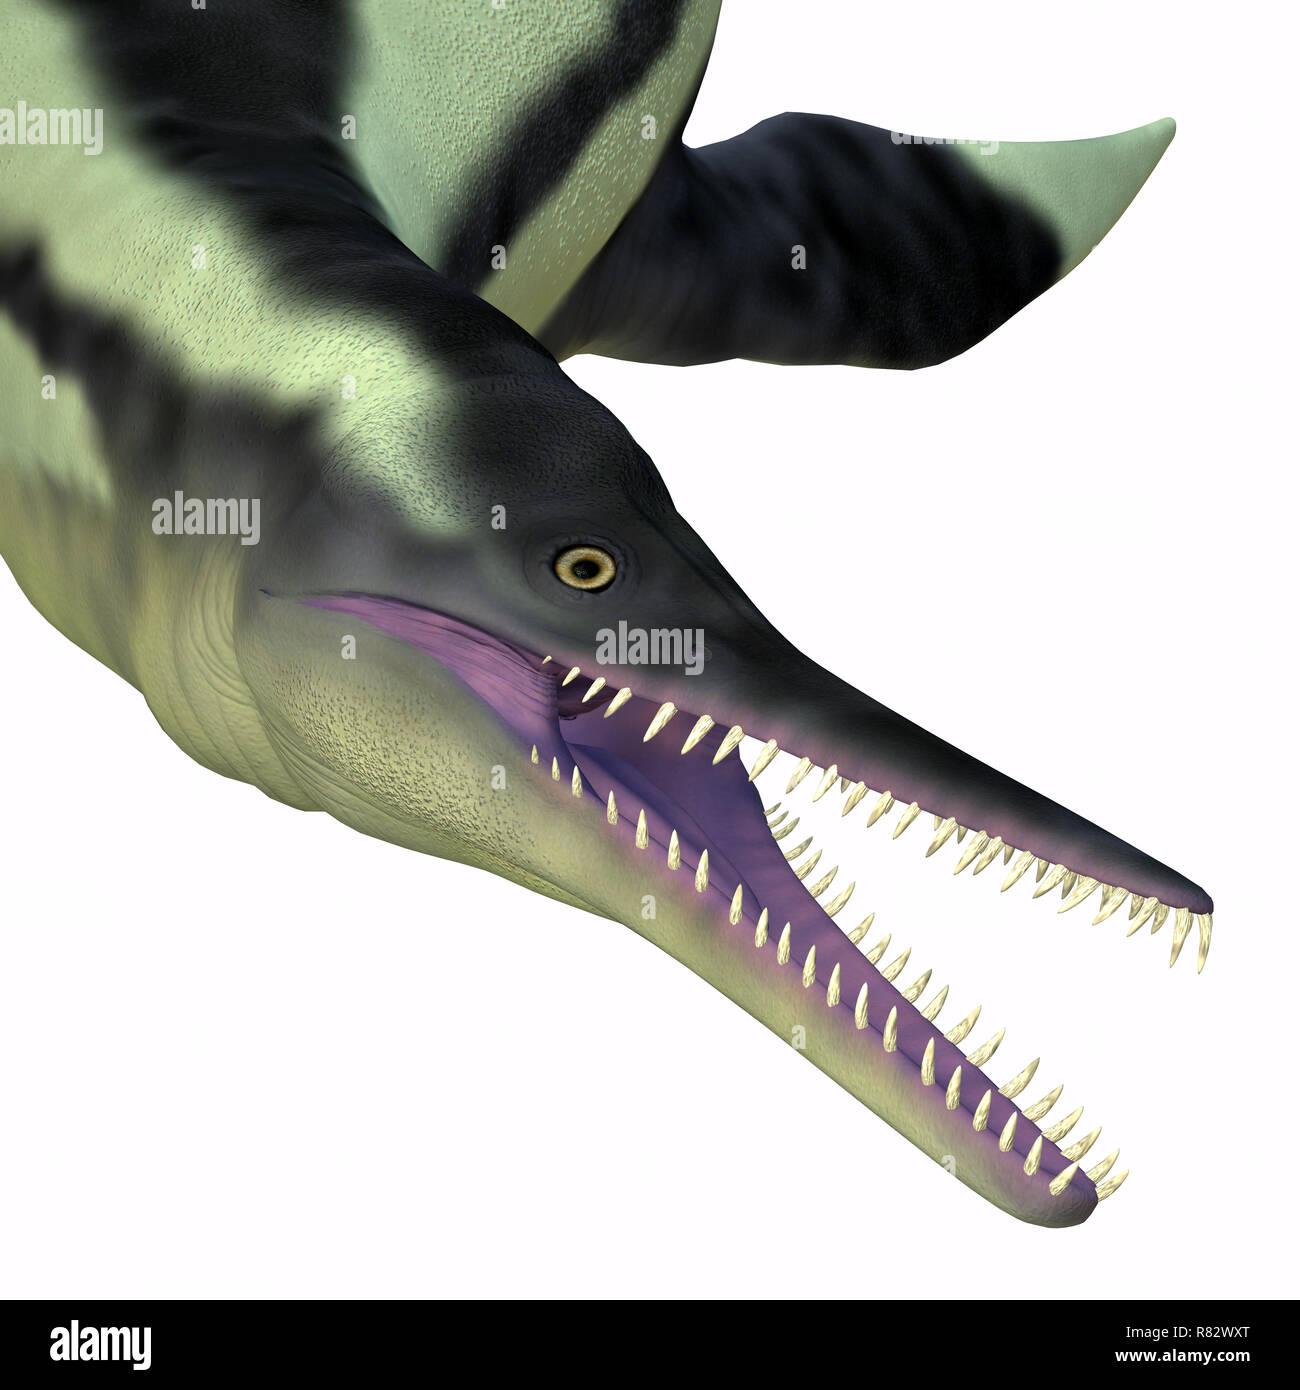 Dolichorhynchops Plesiosaur Head -Dolichorhynchops was a carnivorous reptile Plesiosaur that lived in the seas of Kansas during the Cretaceous Period. - Stock Image